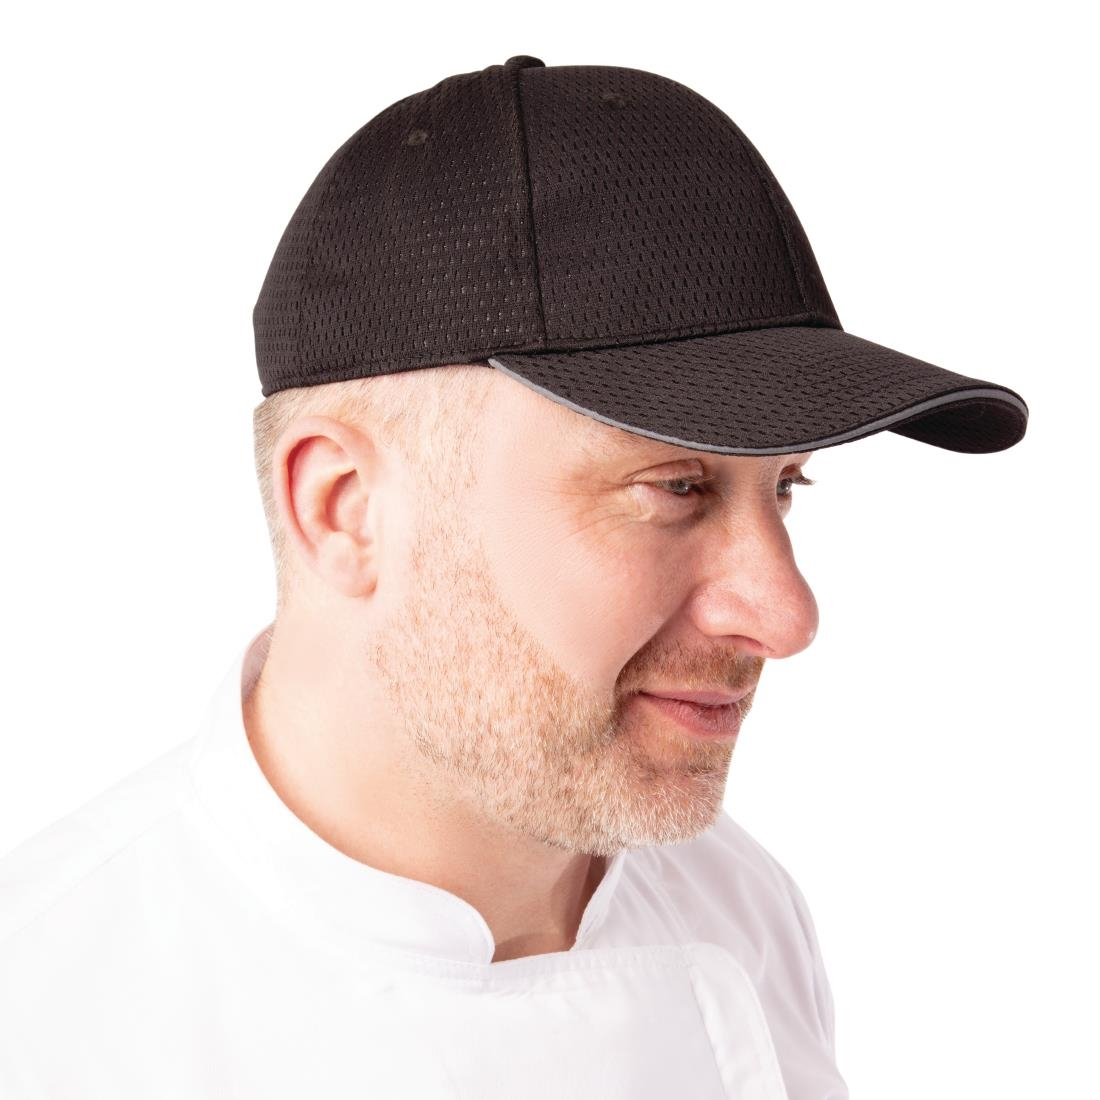 e27a0d8c0 Chef Works Cool Vent Baseball Cap with Grey - A942 - Buy Online at ...